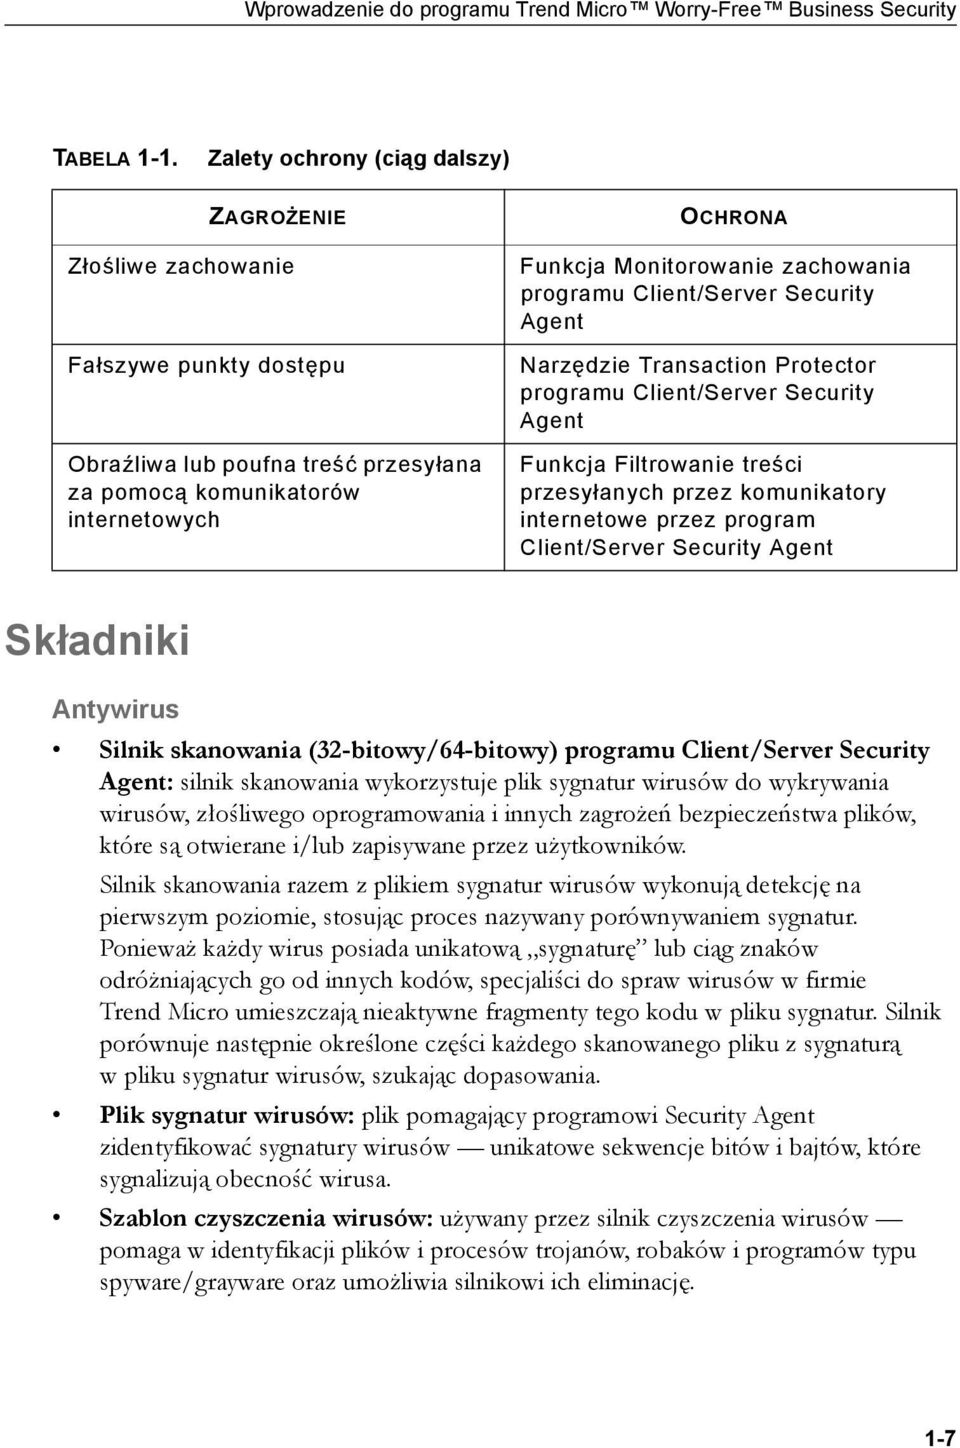 zachowania programu Client/Server Security Agent Narzędzie Transaction Protector programu Client/Server Security Agent Funkcja Filtrowanie treści przesyłanych przez komunikatory internetowe przez